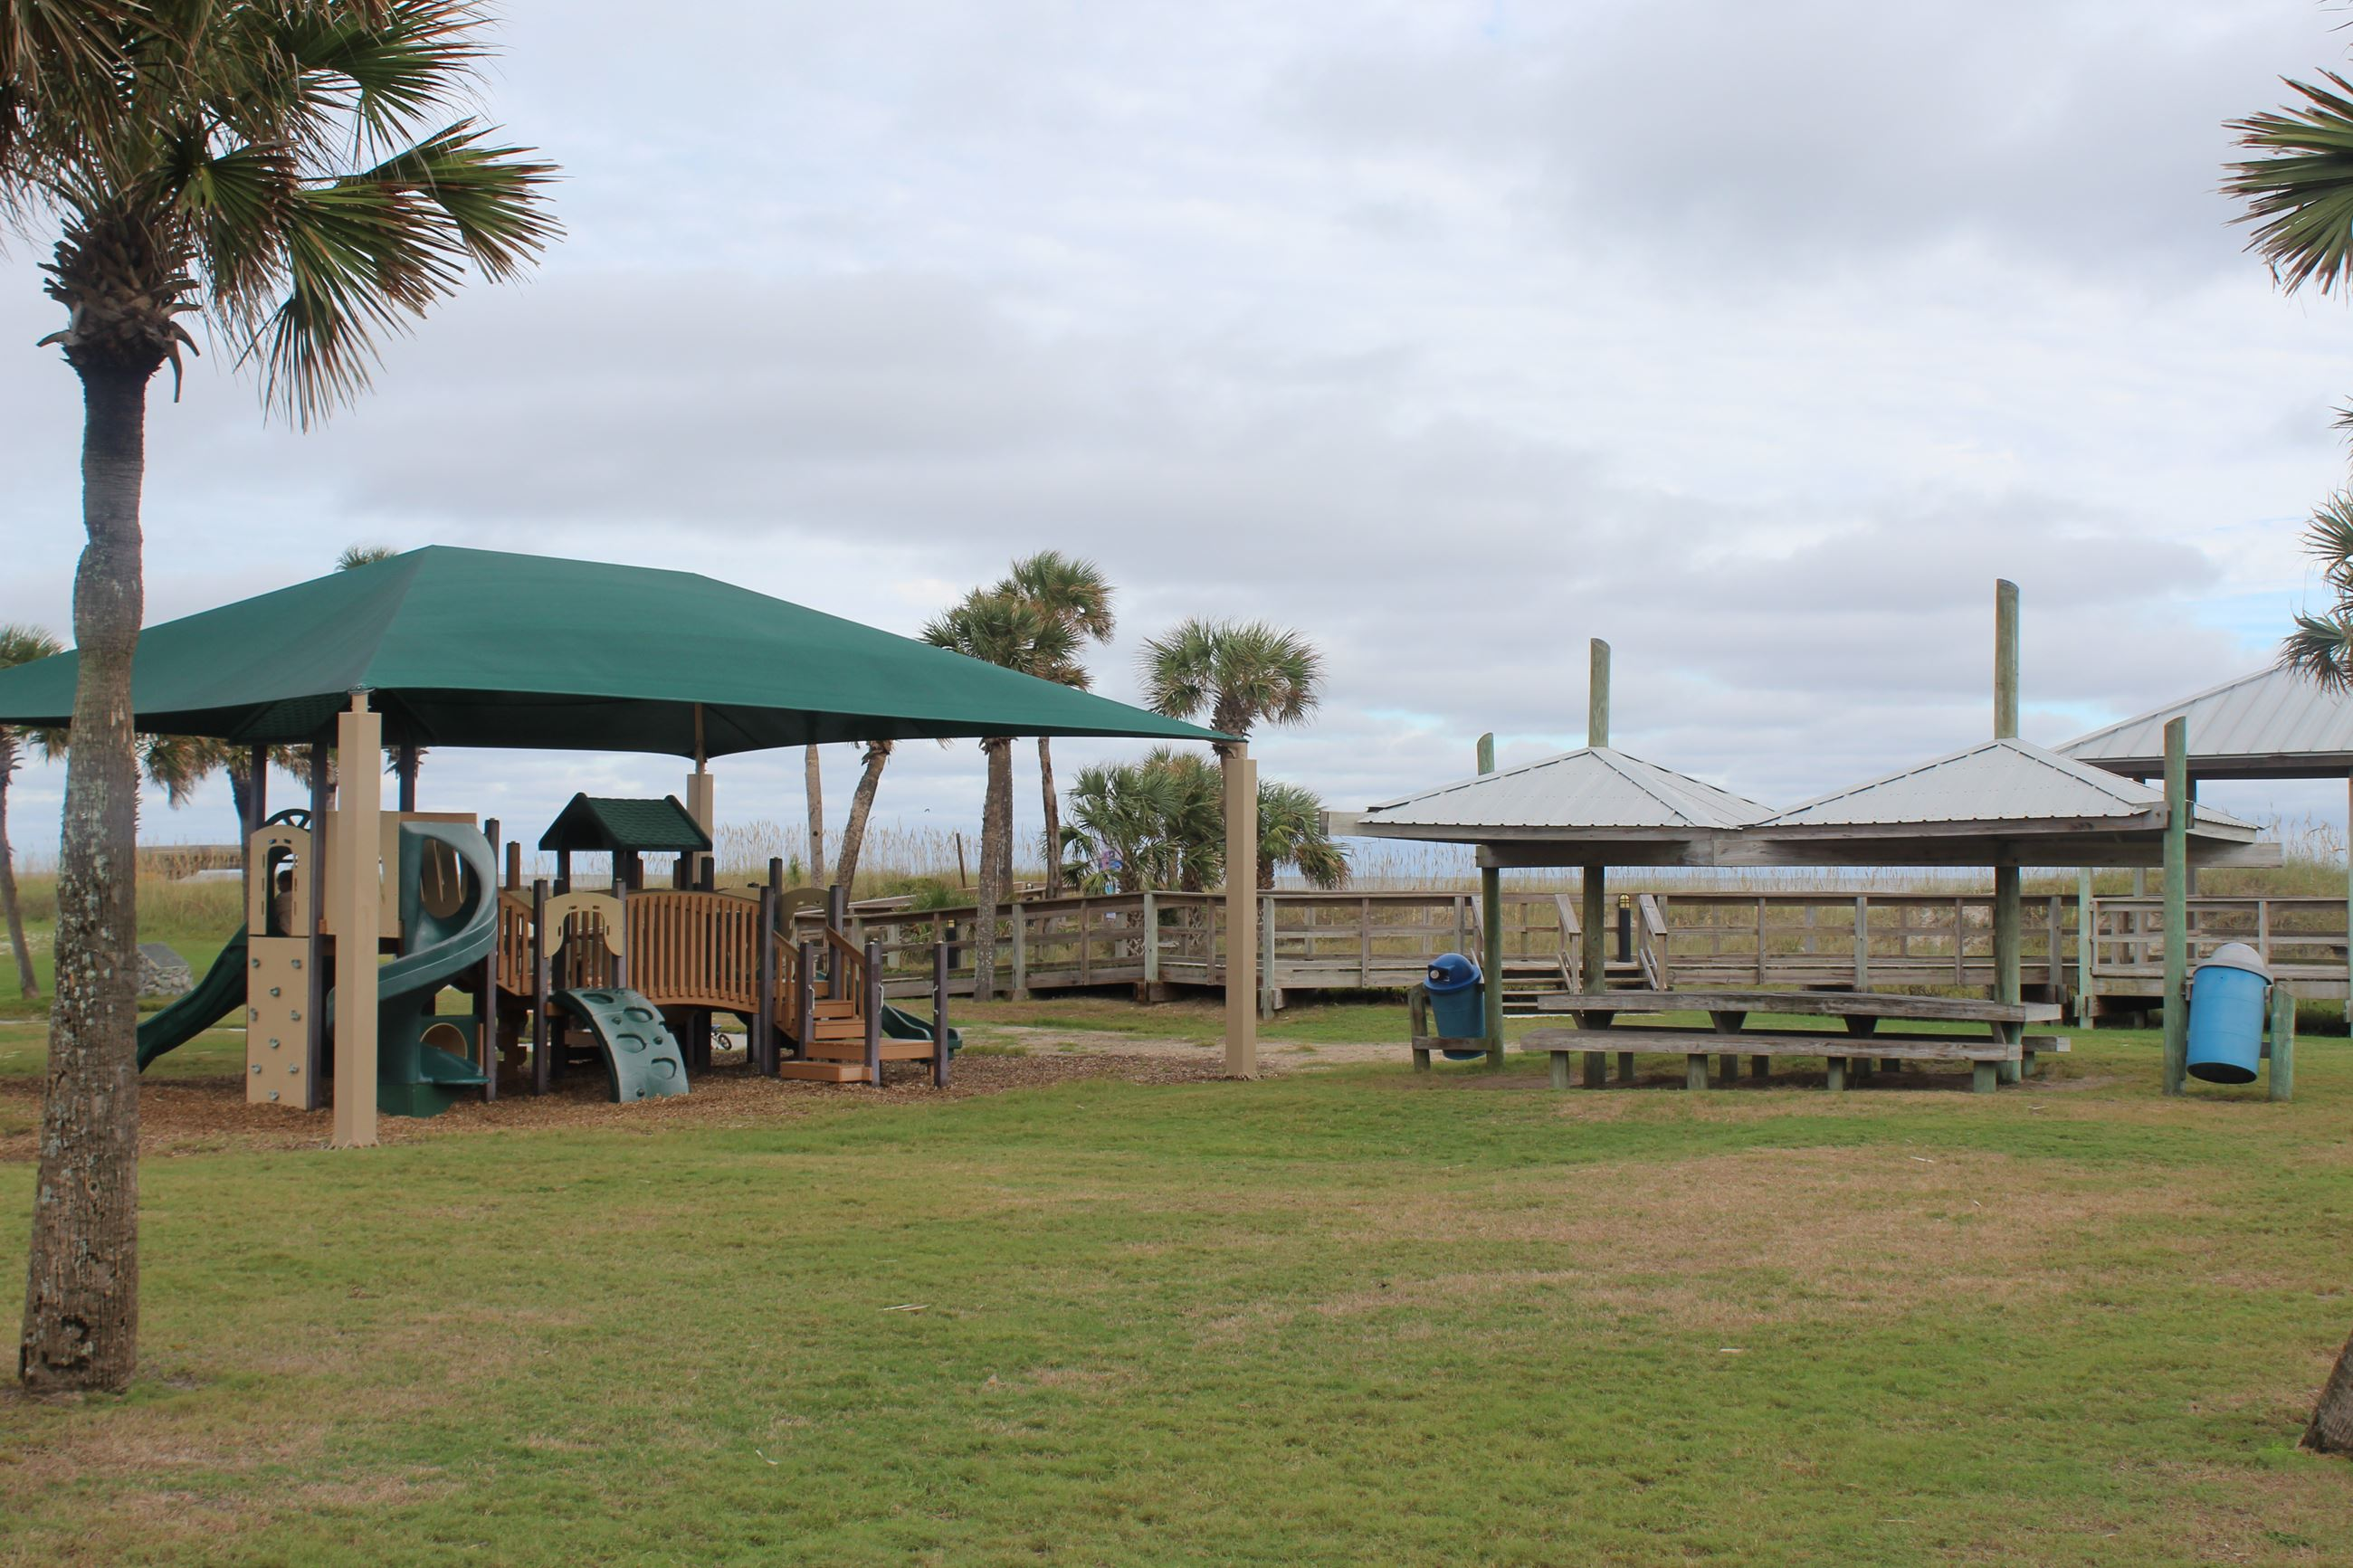 MB Park-playground and picnic shelt